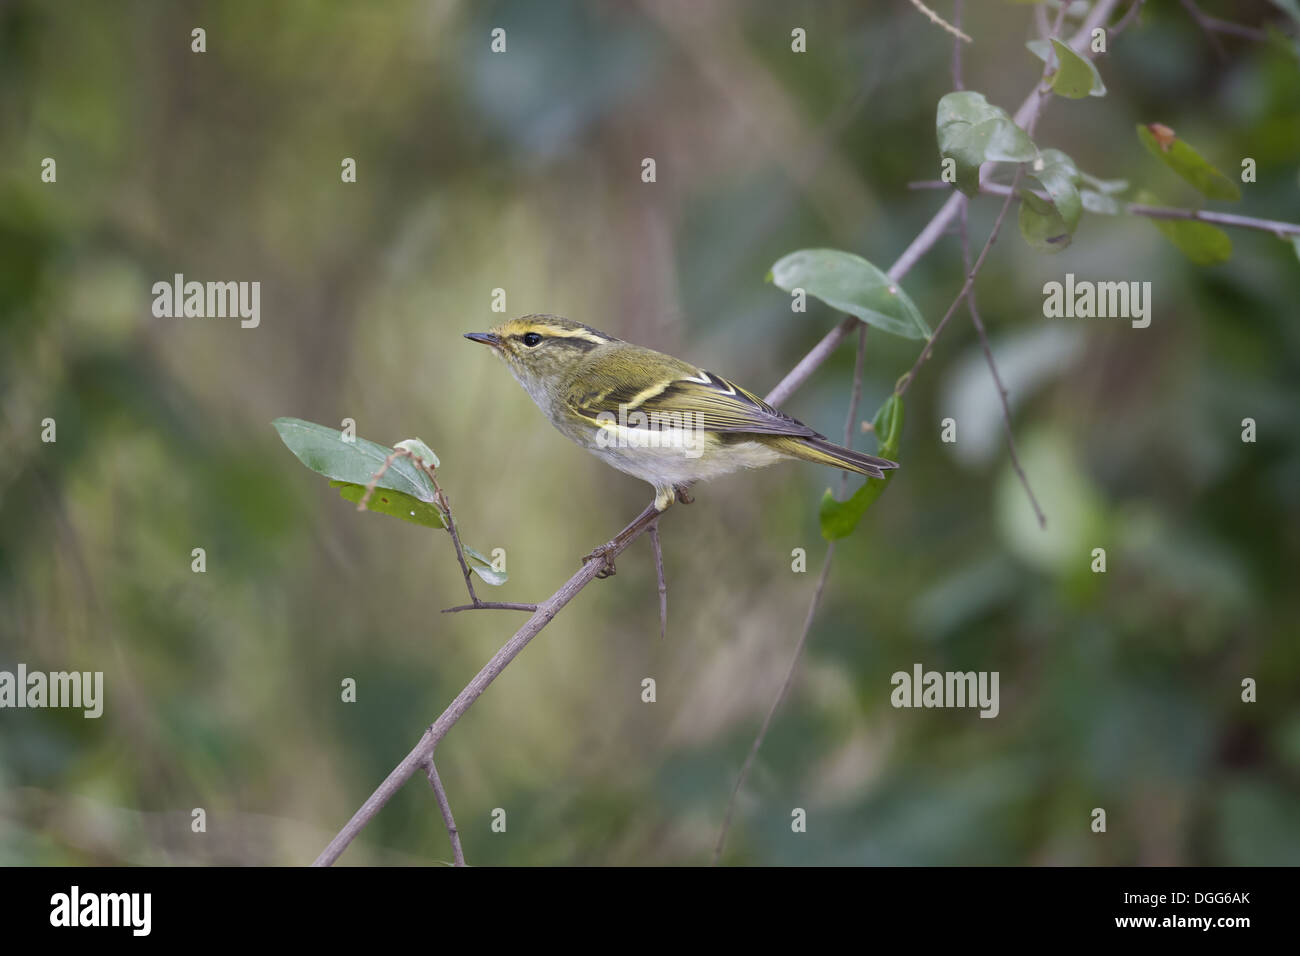 Pallas's Warbler (Phylloscopus proregulus) adult, breeding plumage, perched on twig, Hong Kong, China, January Stock Photo